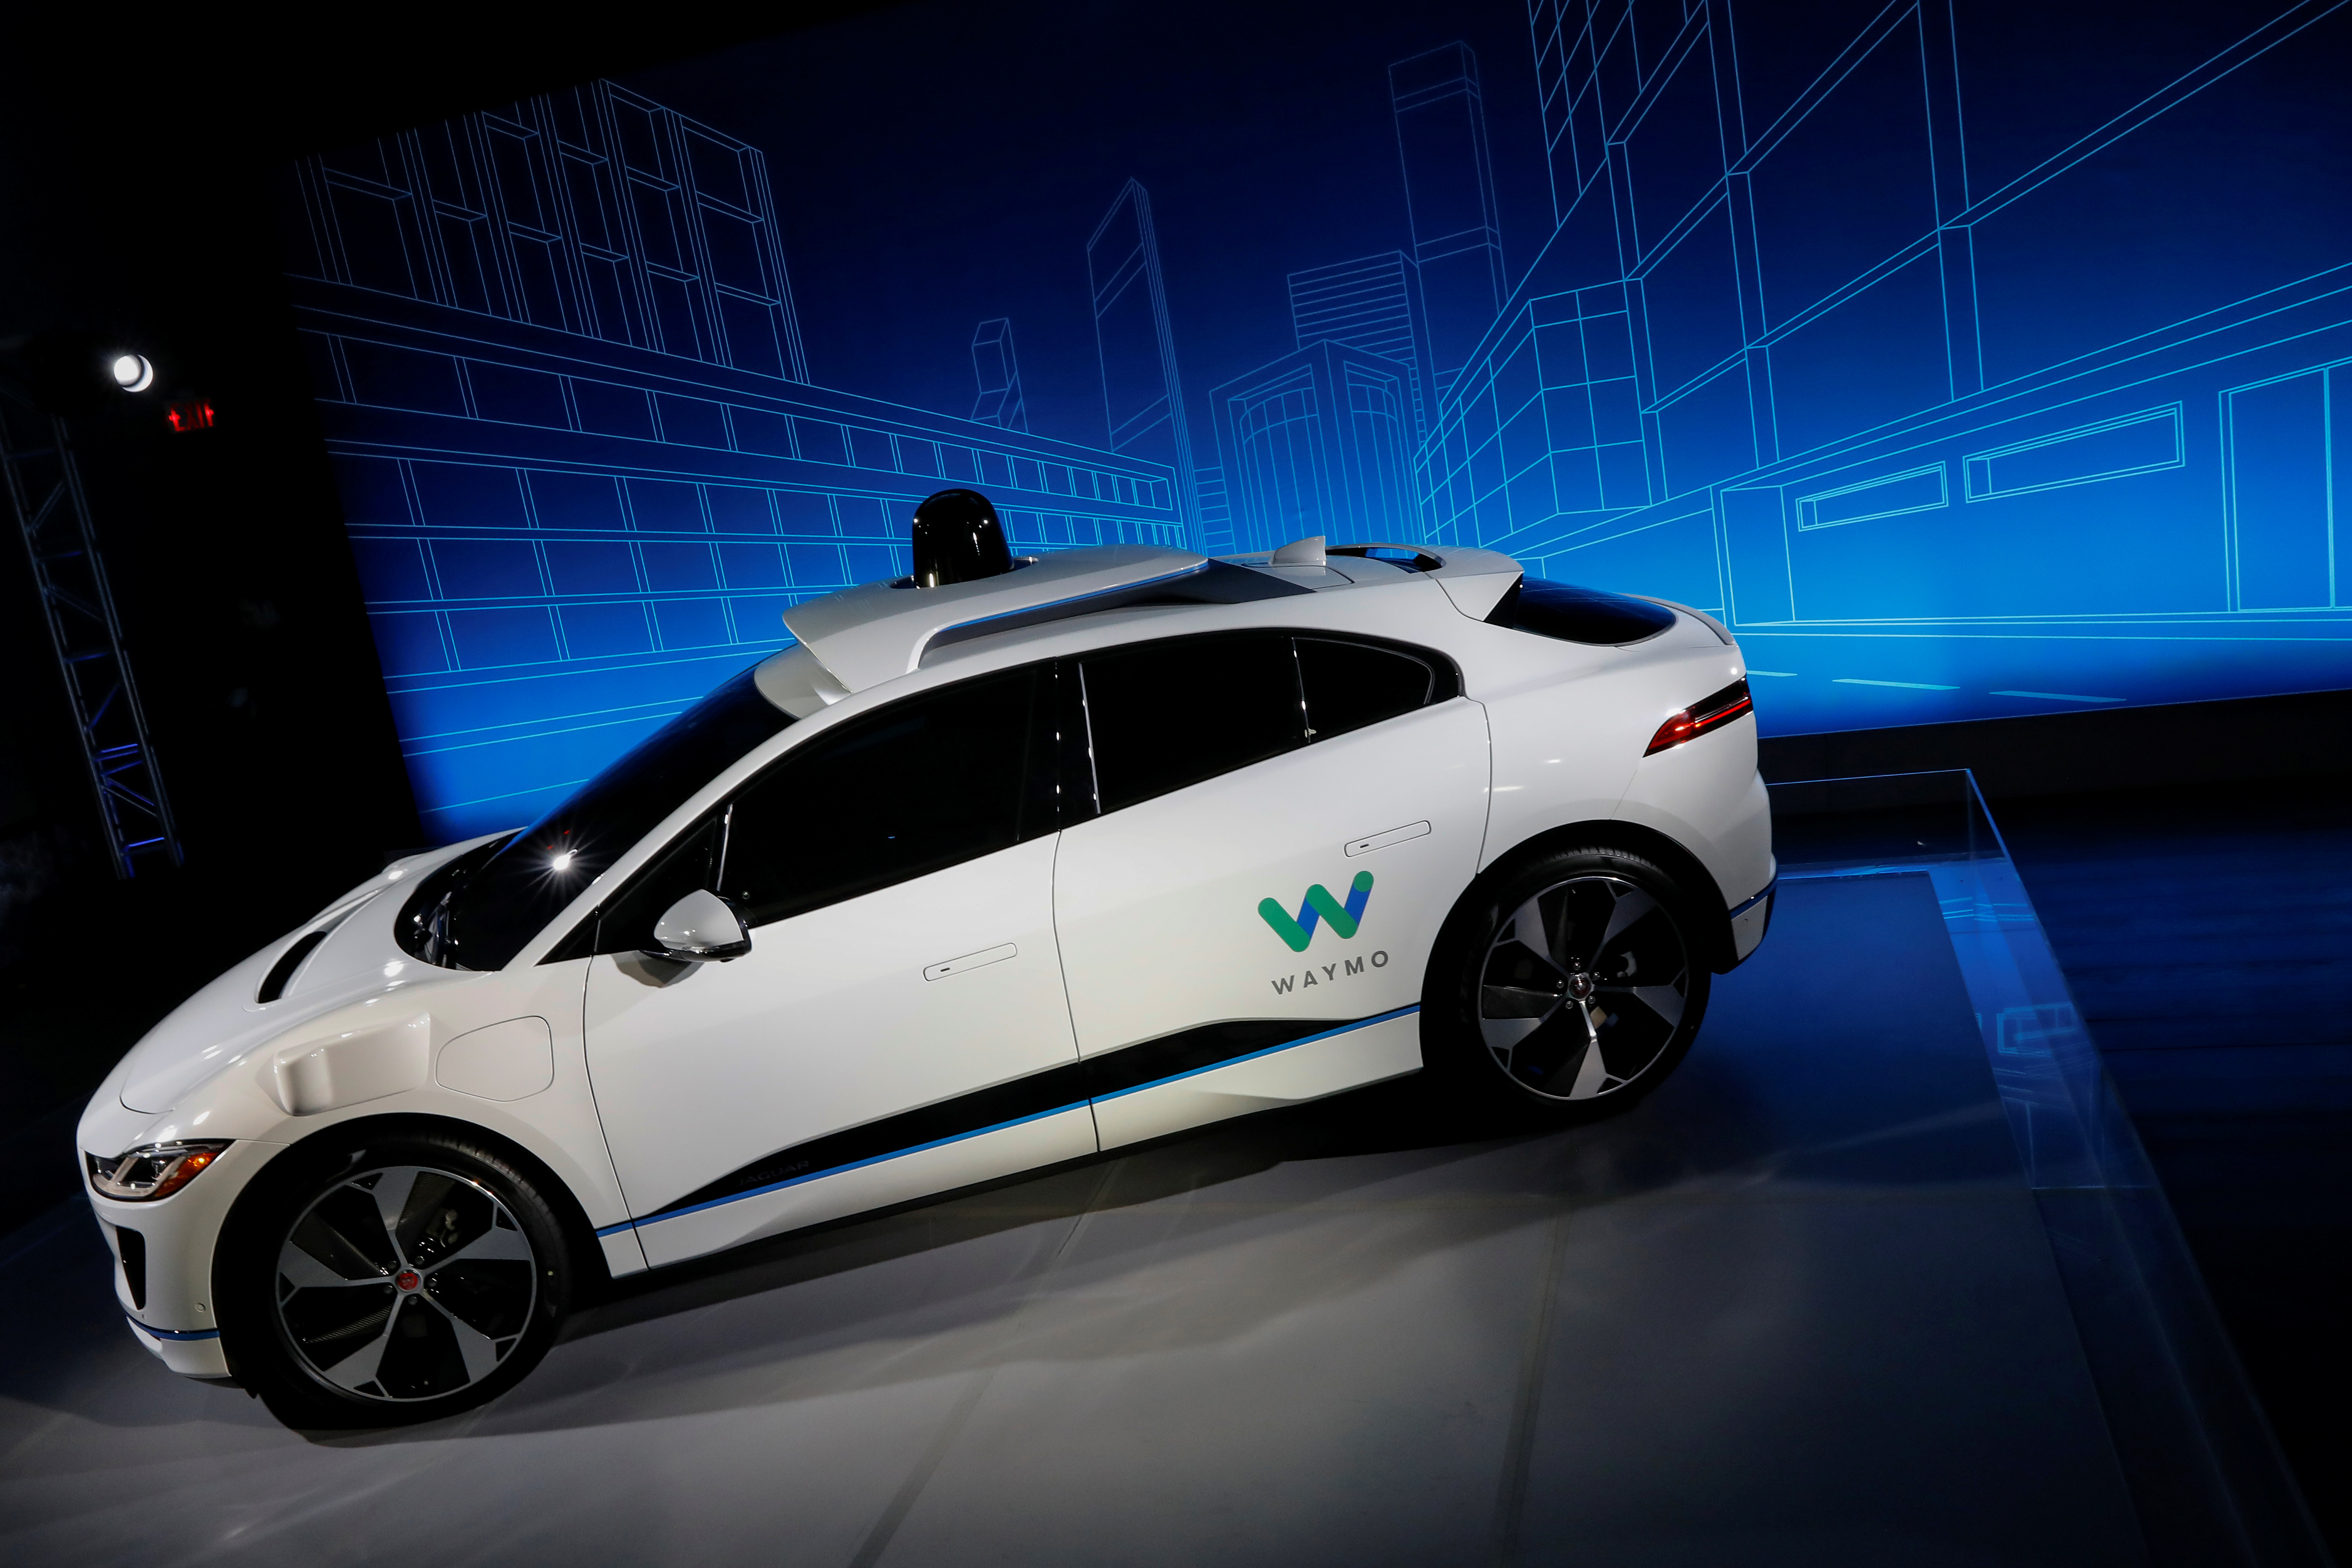 A Jaguar I-PACE self-driving car is pictured during its unveiling by Waymo in the Manhattan borough of New York City, March 27, 2018.